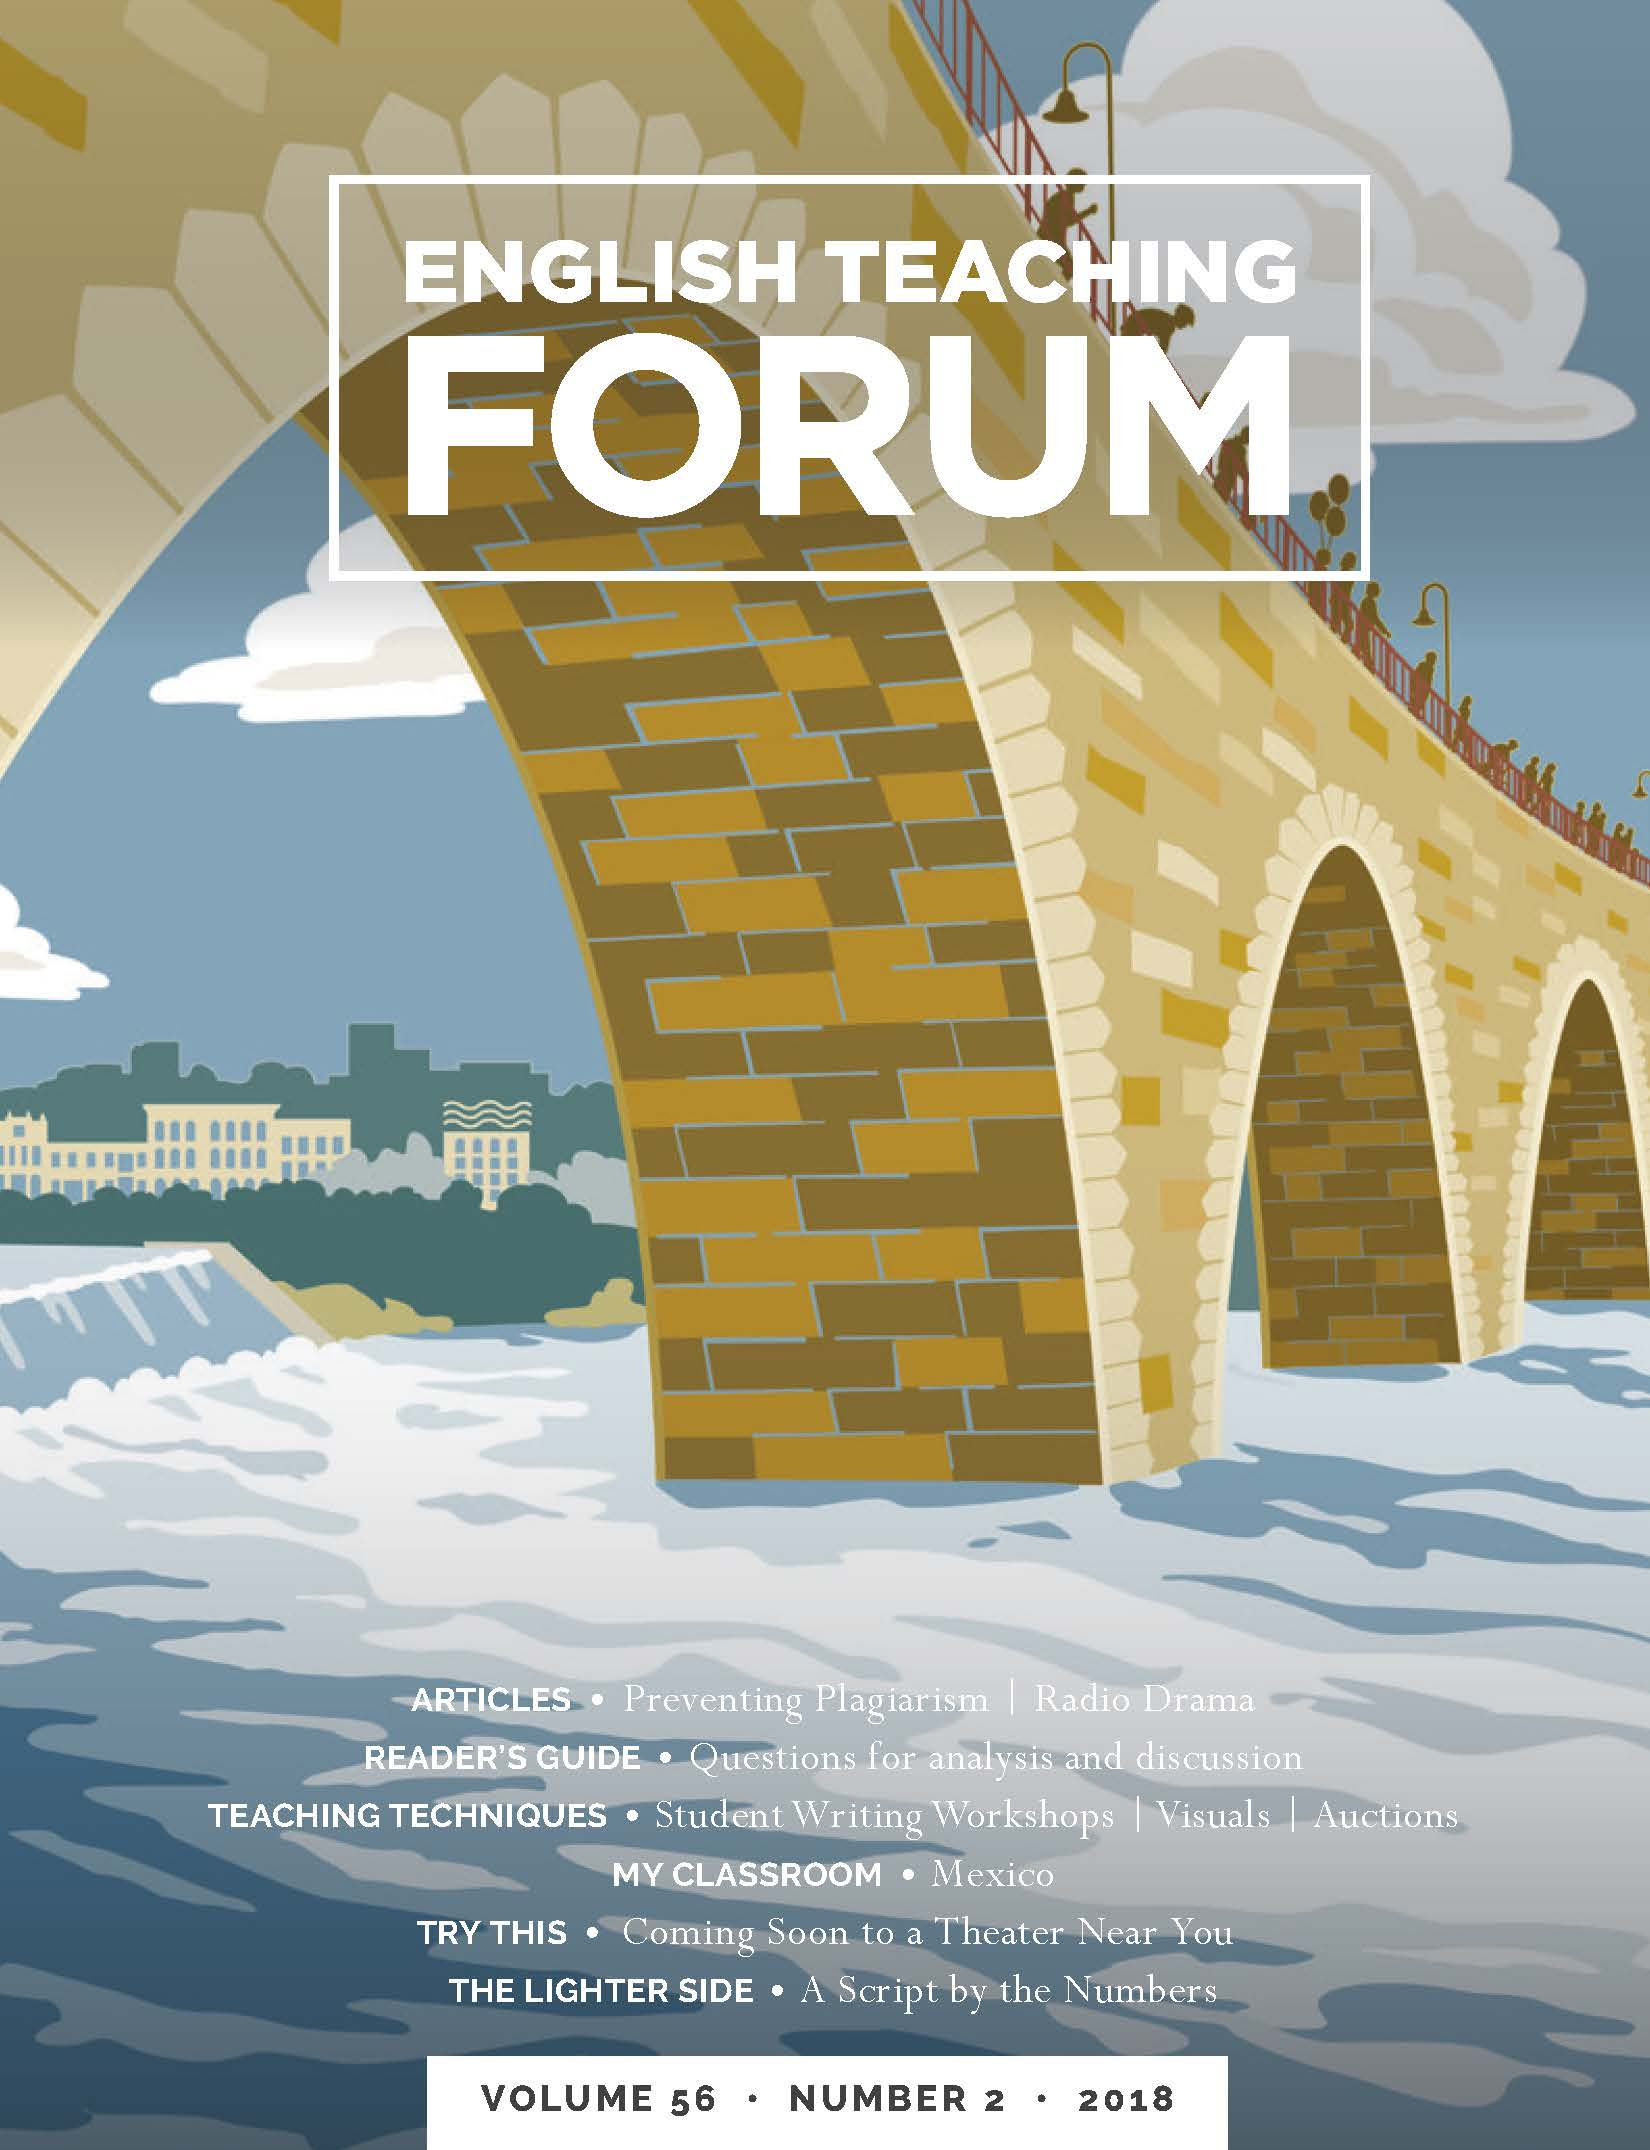 English Teaching Forum Volume 56 Number 2